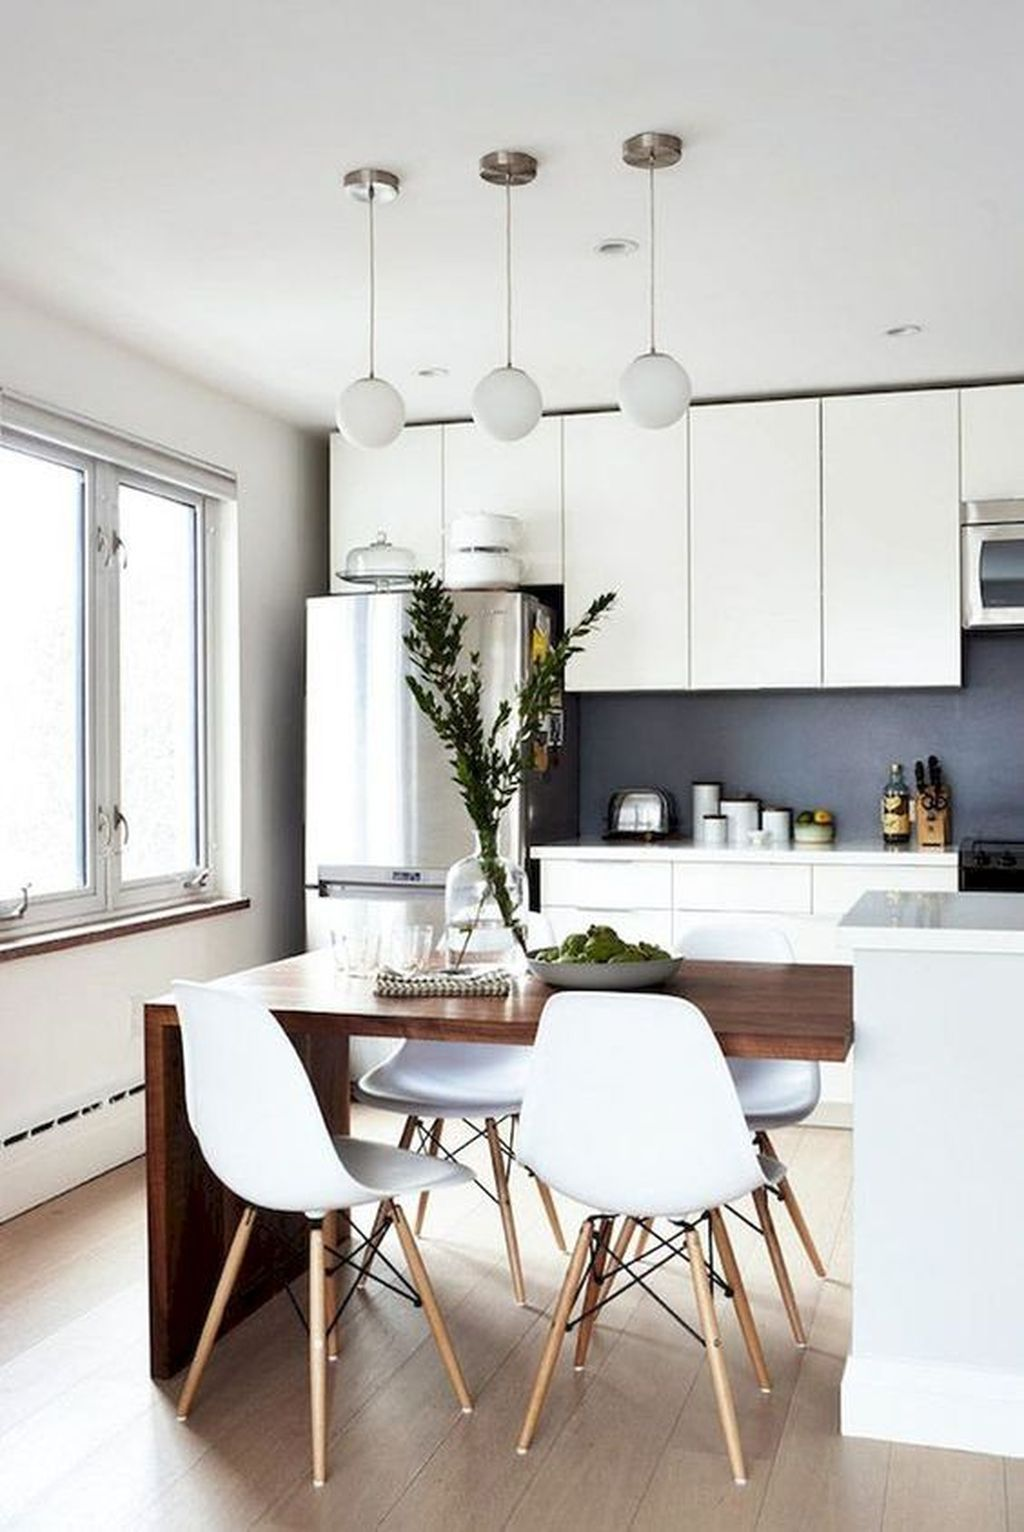 6 Creative Apartment Kitchen Ideas To Make Your Kitchen Beautiful Small Dining Room Decor Small Kitchen Decor Kitchen Design Small